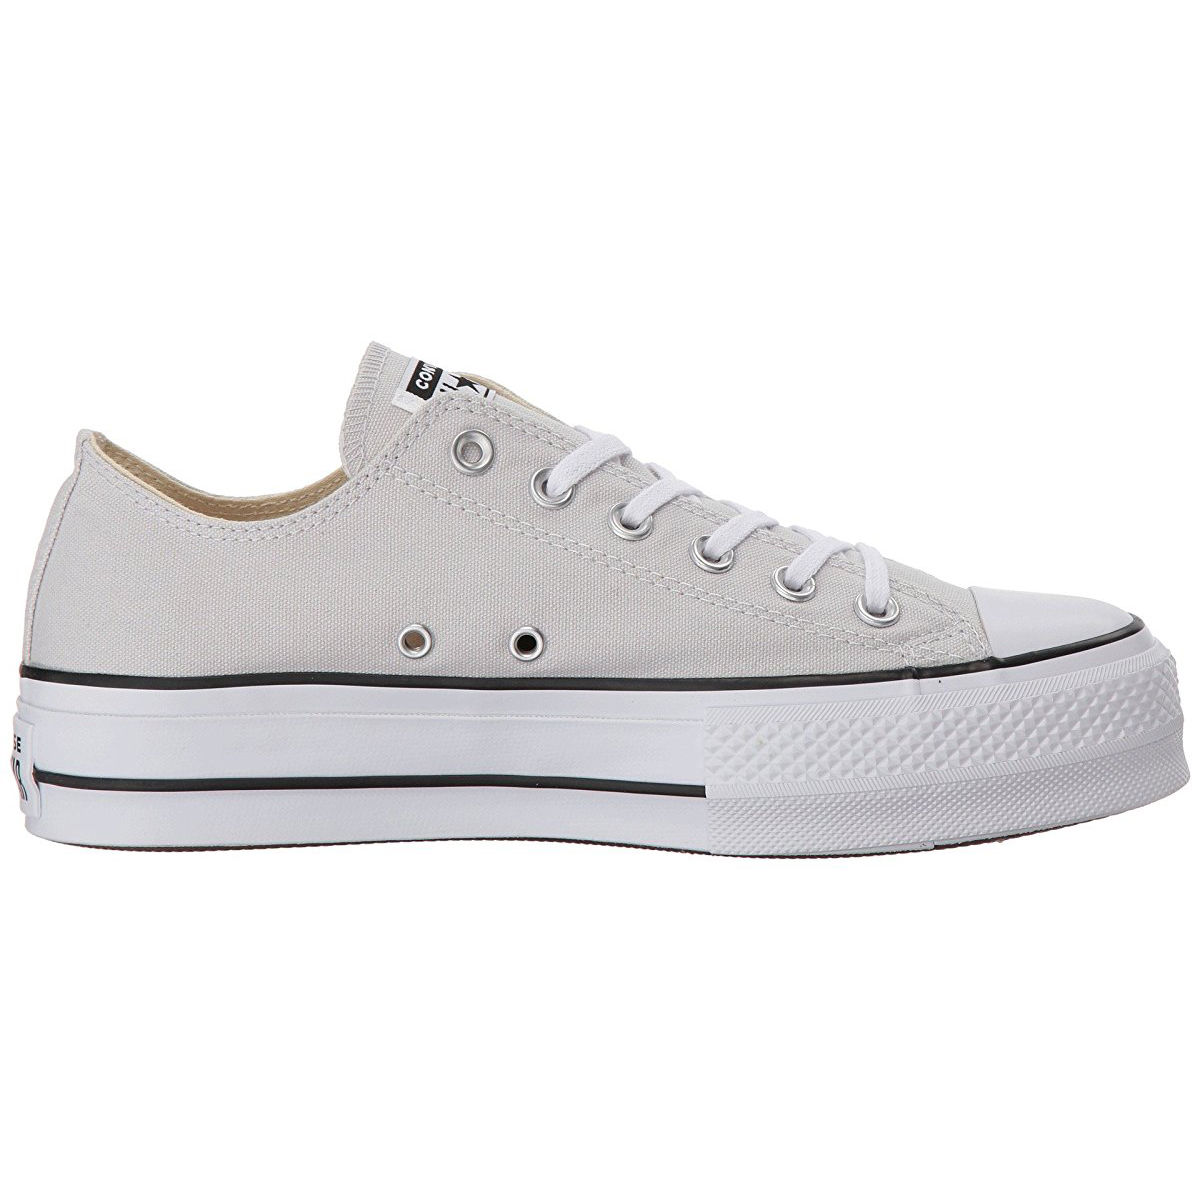 Converse Chuck Taylor All Star Lift Low Canvas Womens Casual Shoe